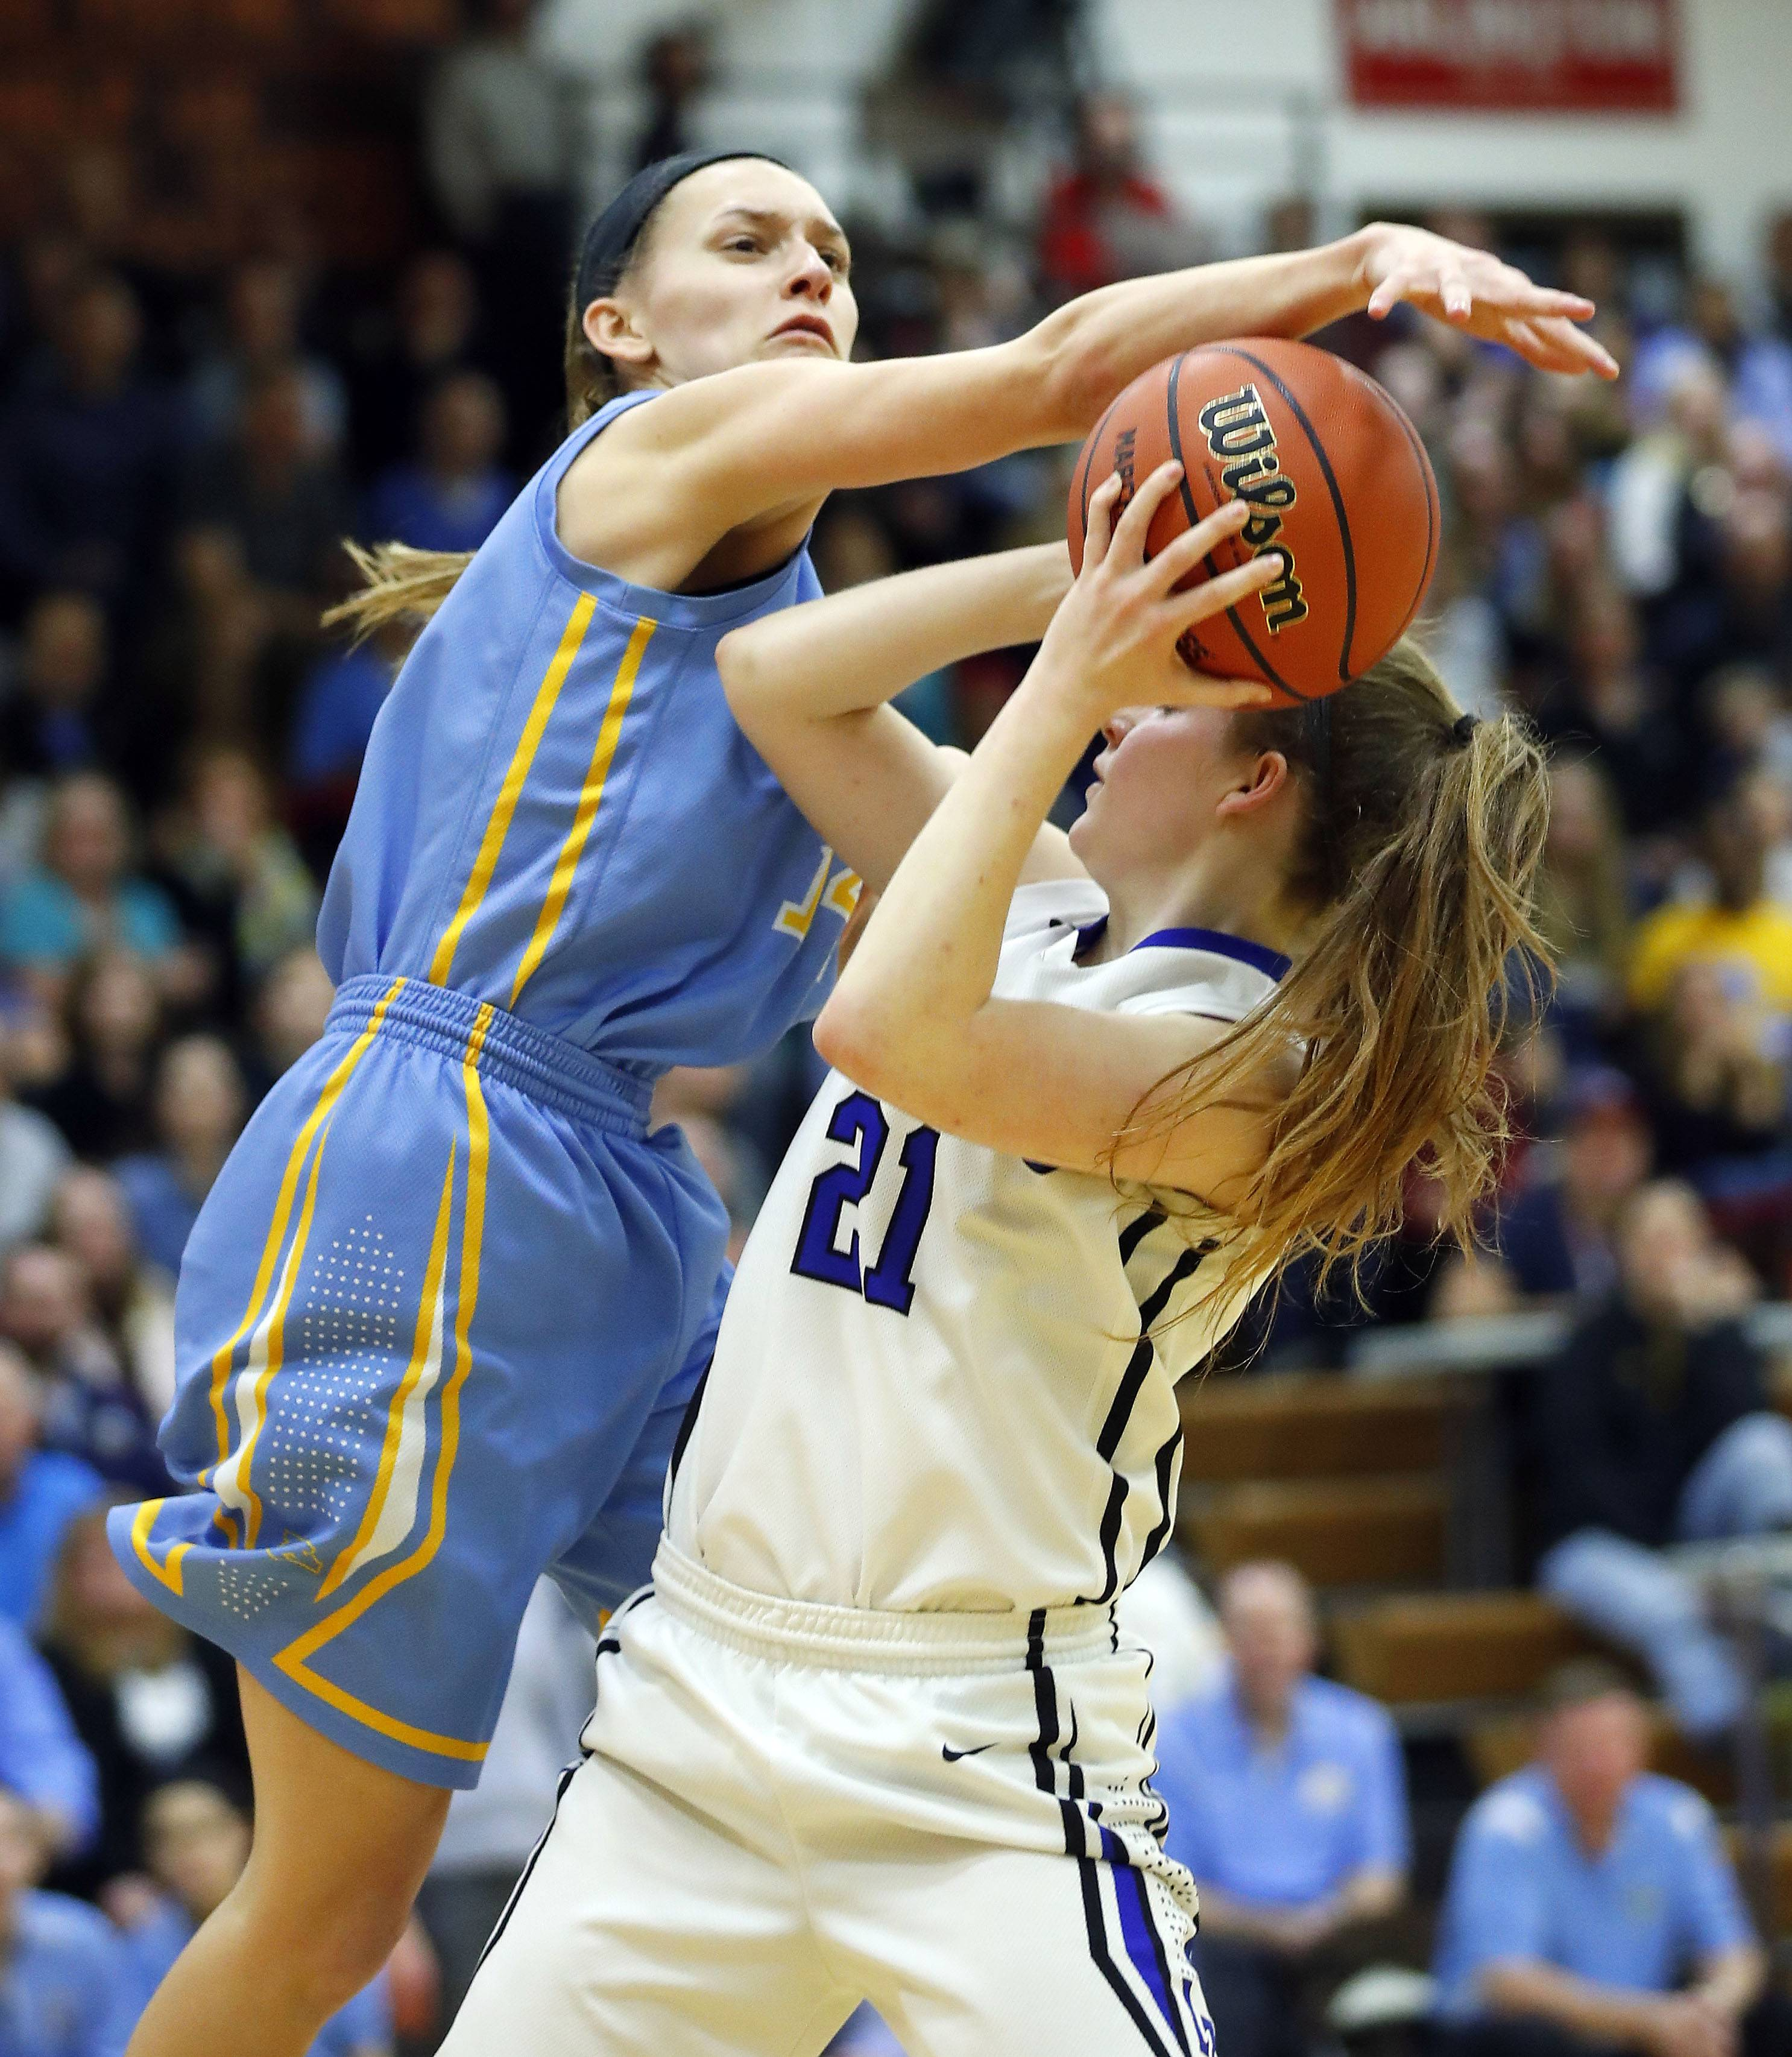 Maine West's Catherine Johnson, left, defends against Lake Zurich's Anna Biergans during the Class 4A Hersey supersectional in Arlington Heights on Monday.